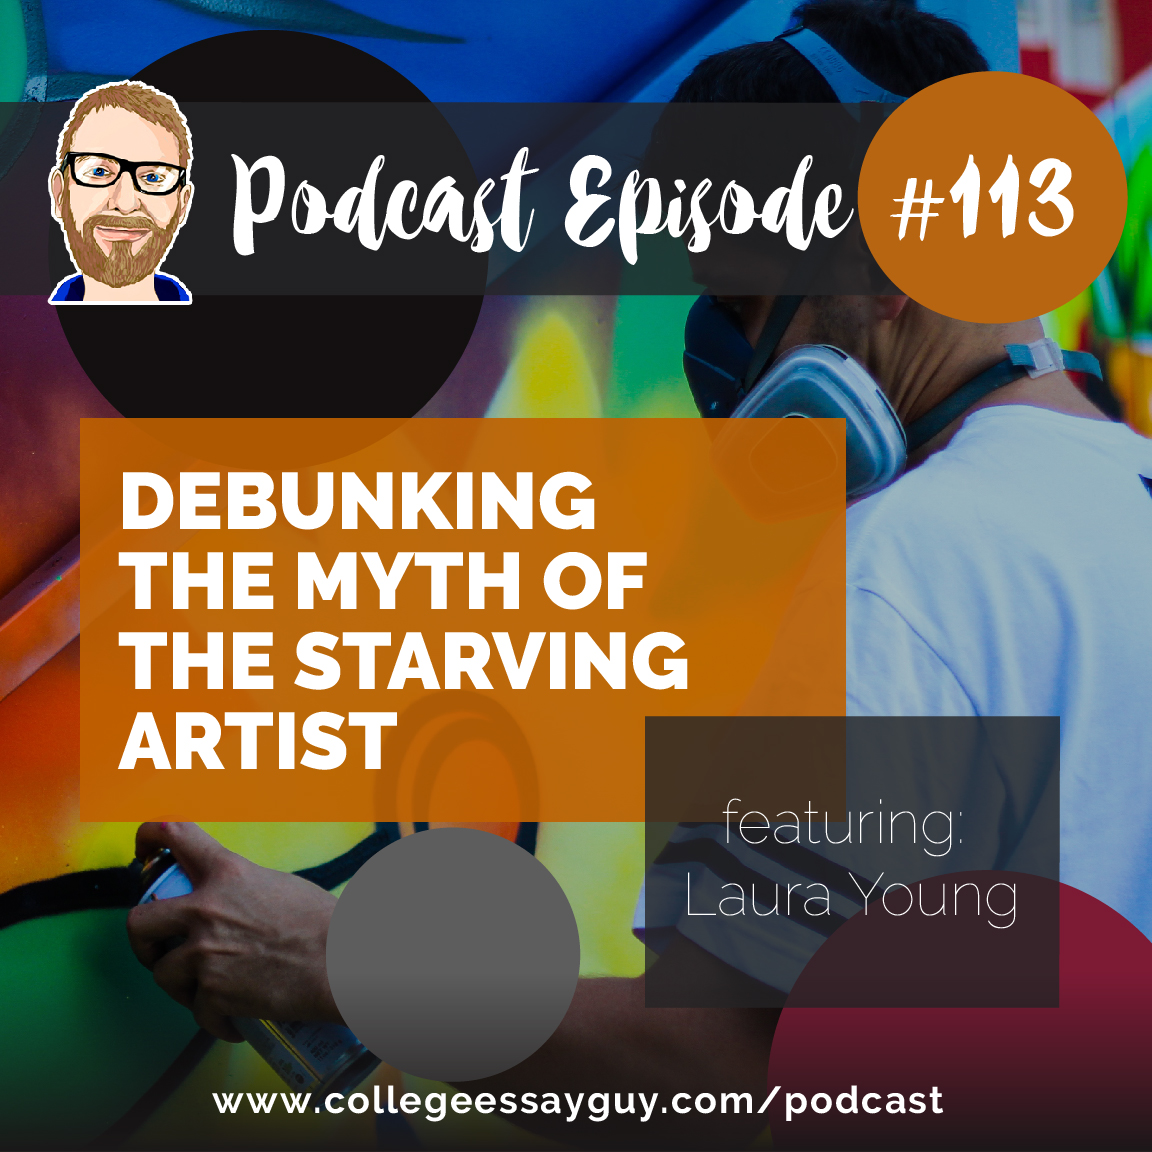 "My guest on this episode is Laura Young, a friend of mine who is the director of enrollment management at the UCLA School of Arts and Architecture. She was (and I think still is) an ""art kid"" and in our conversation we talk about why that's cool, how that has served her in her current job, and how someone can still make a living even if, dear listener, you are an art kid (or know one who is applying to college)."